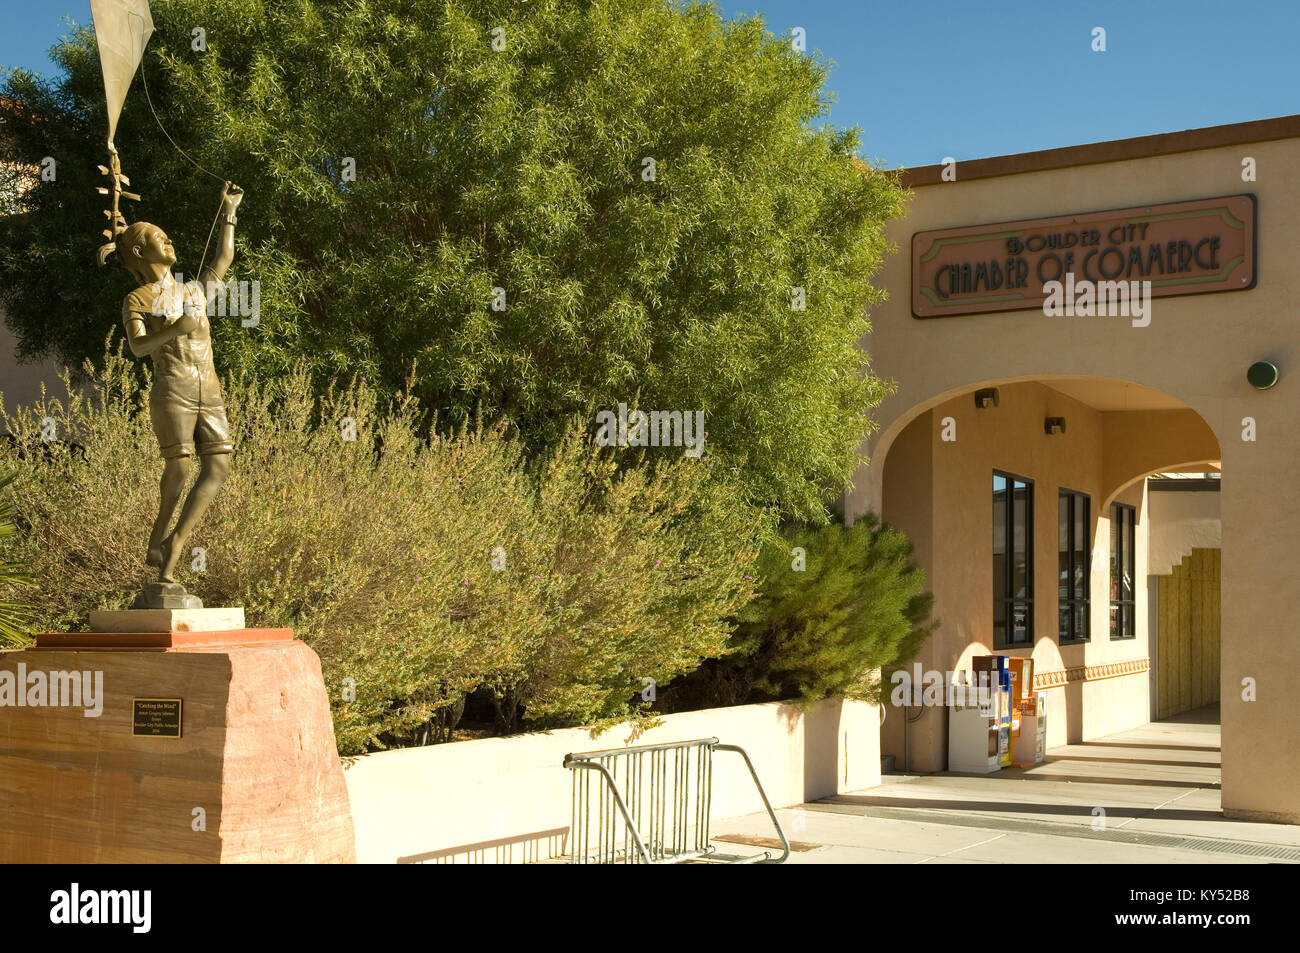 Boulder City Chamber of Commerce with Catching the Wind sculpture by Gregory Johnson at Boulder City, Nevada, USA. - Stock Image